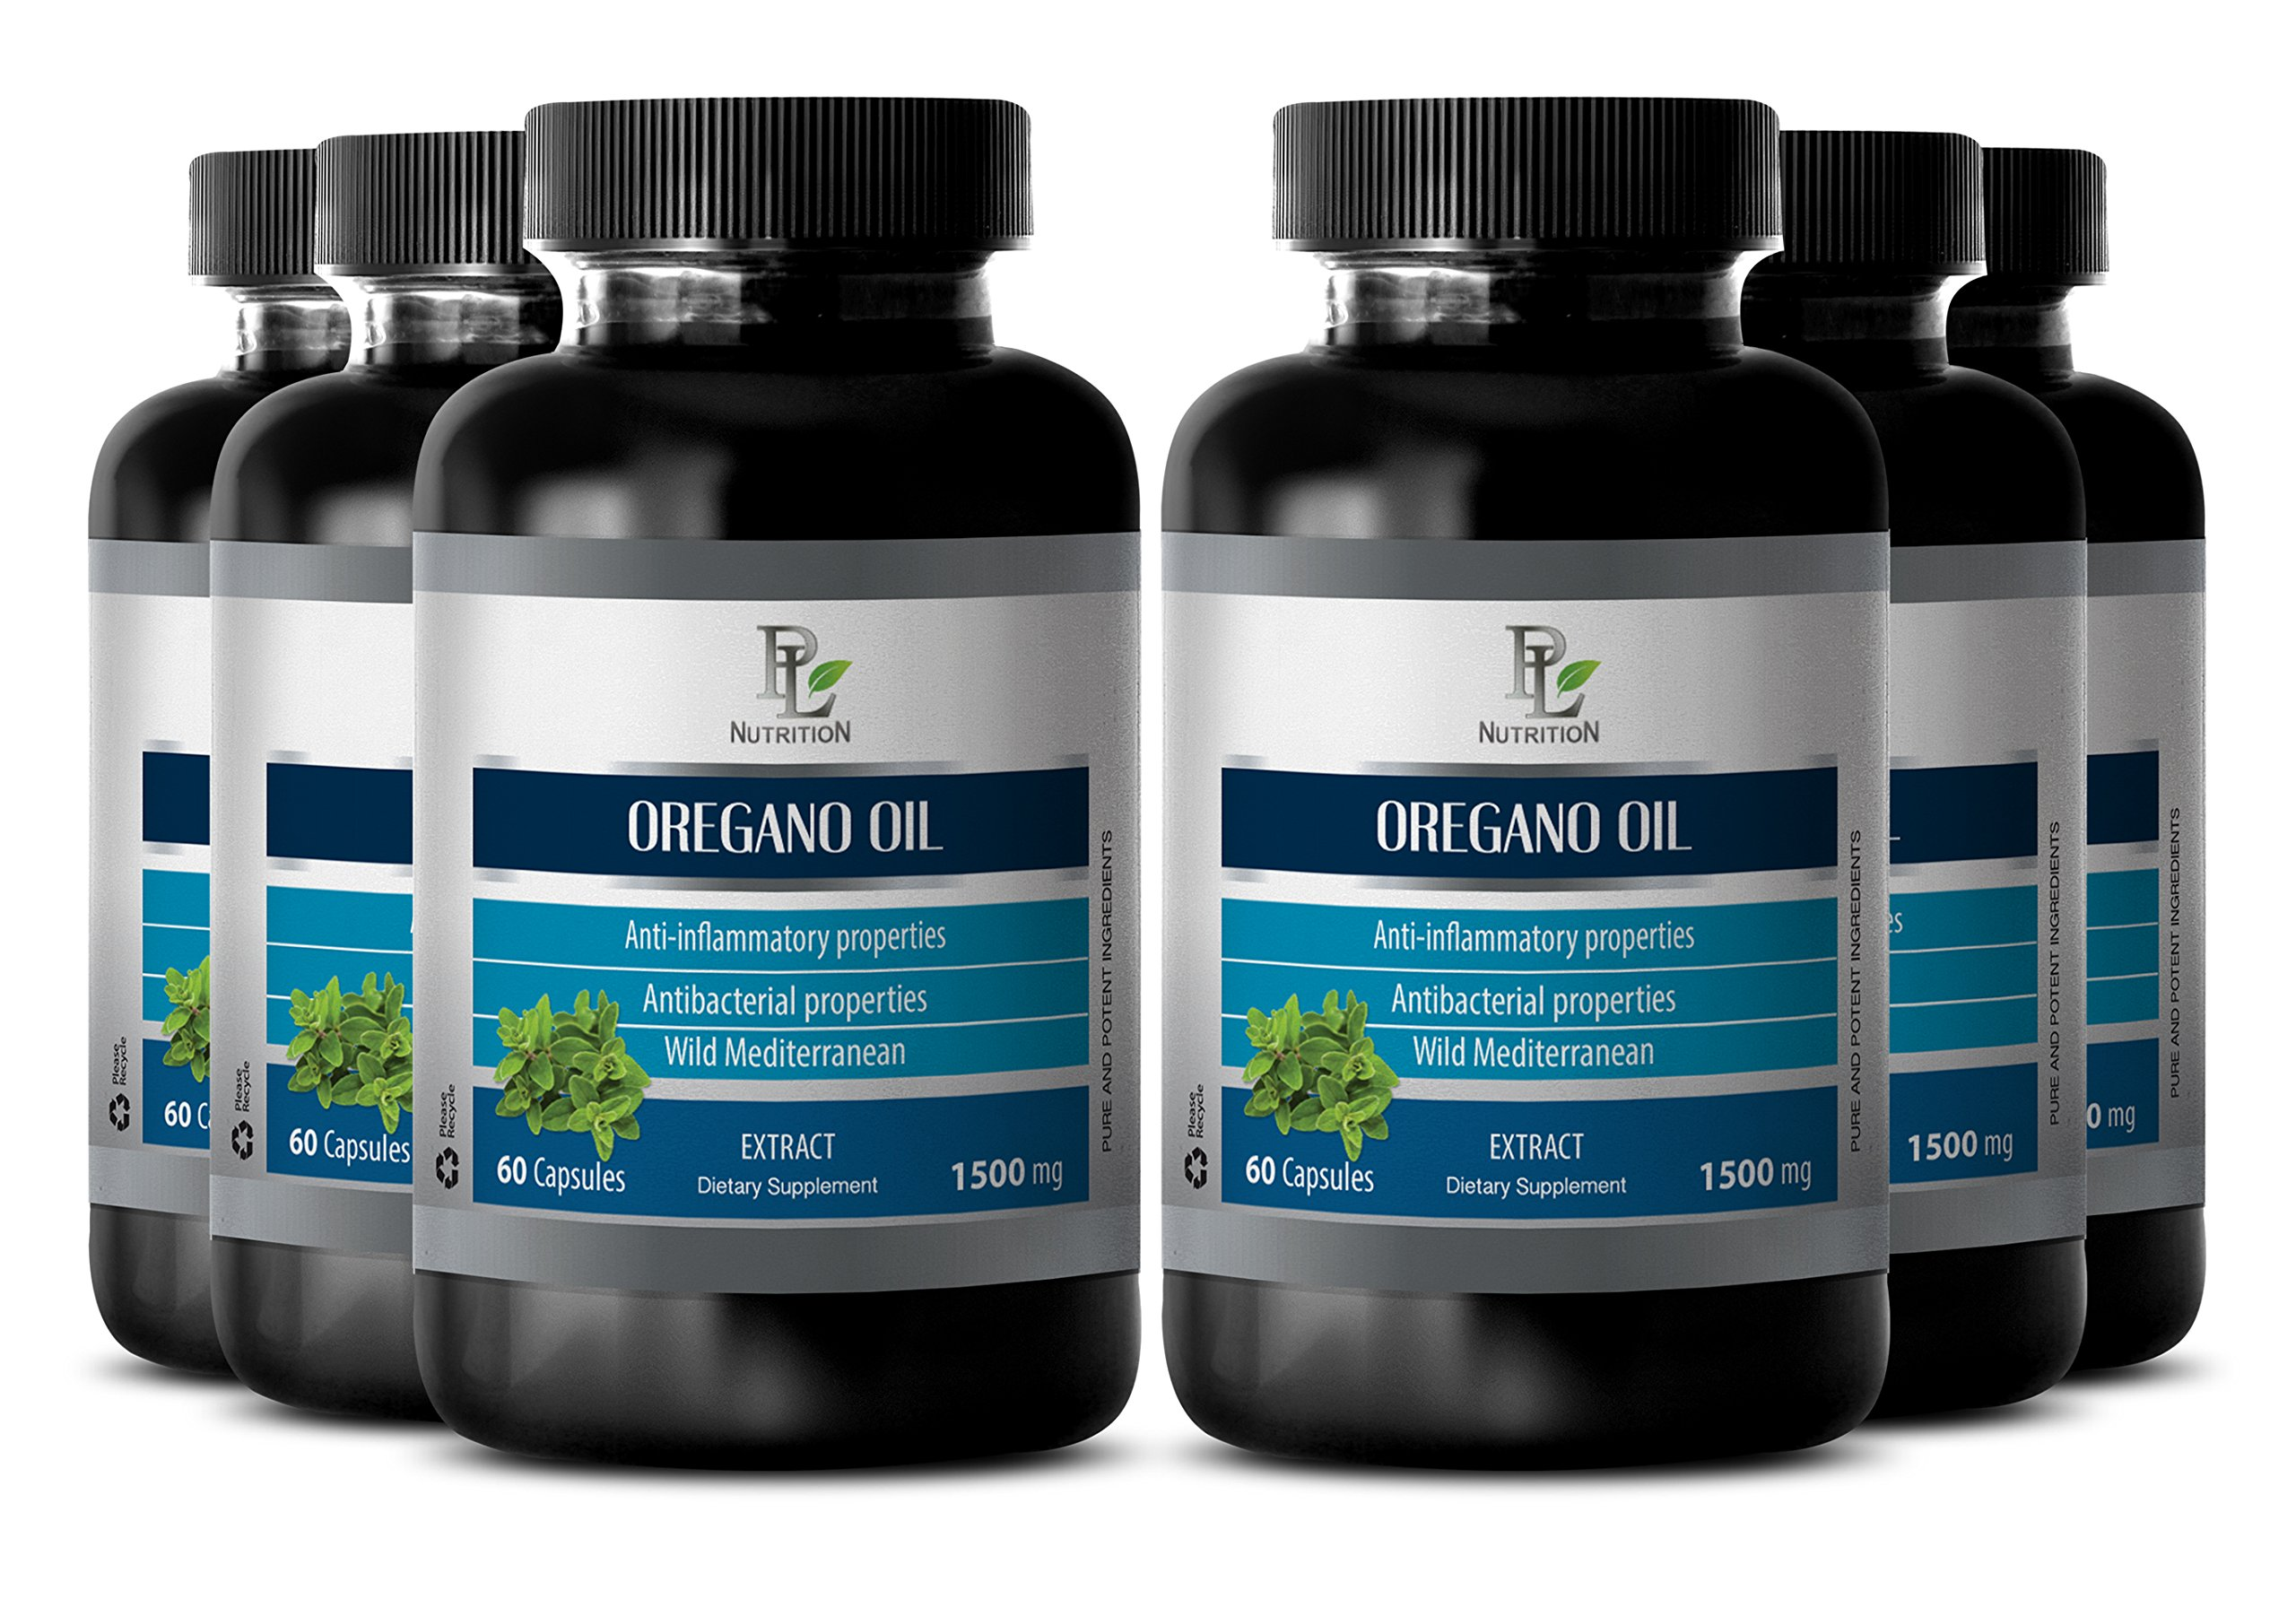 Anti aging - OREGANO OIL EXTRACT 1500mg - Oil of oregano capsules - 6 Bottles 360 Capsules